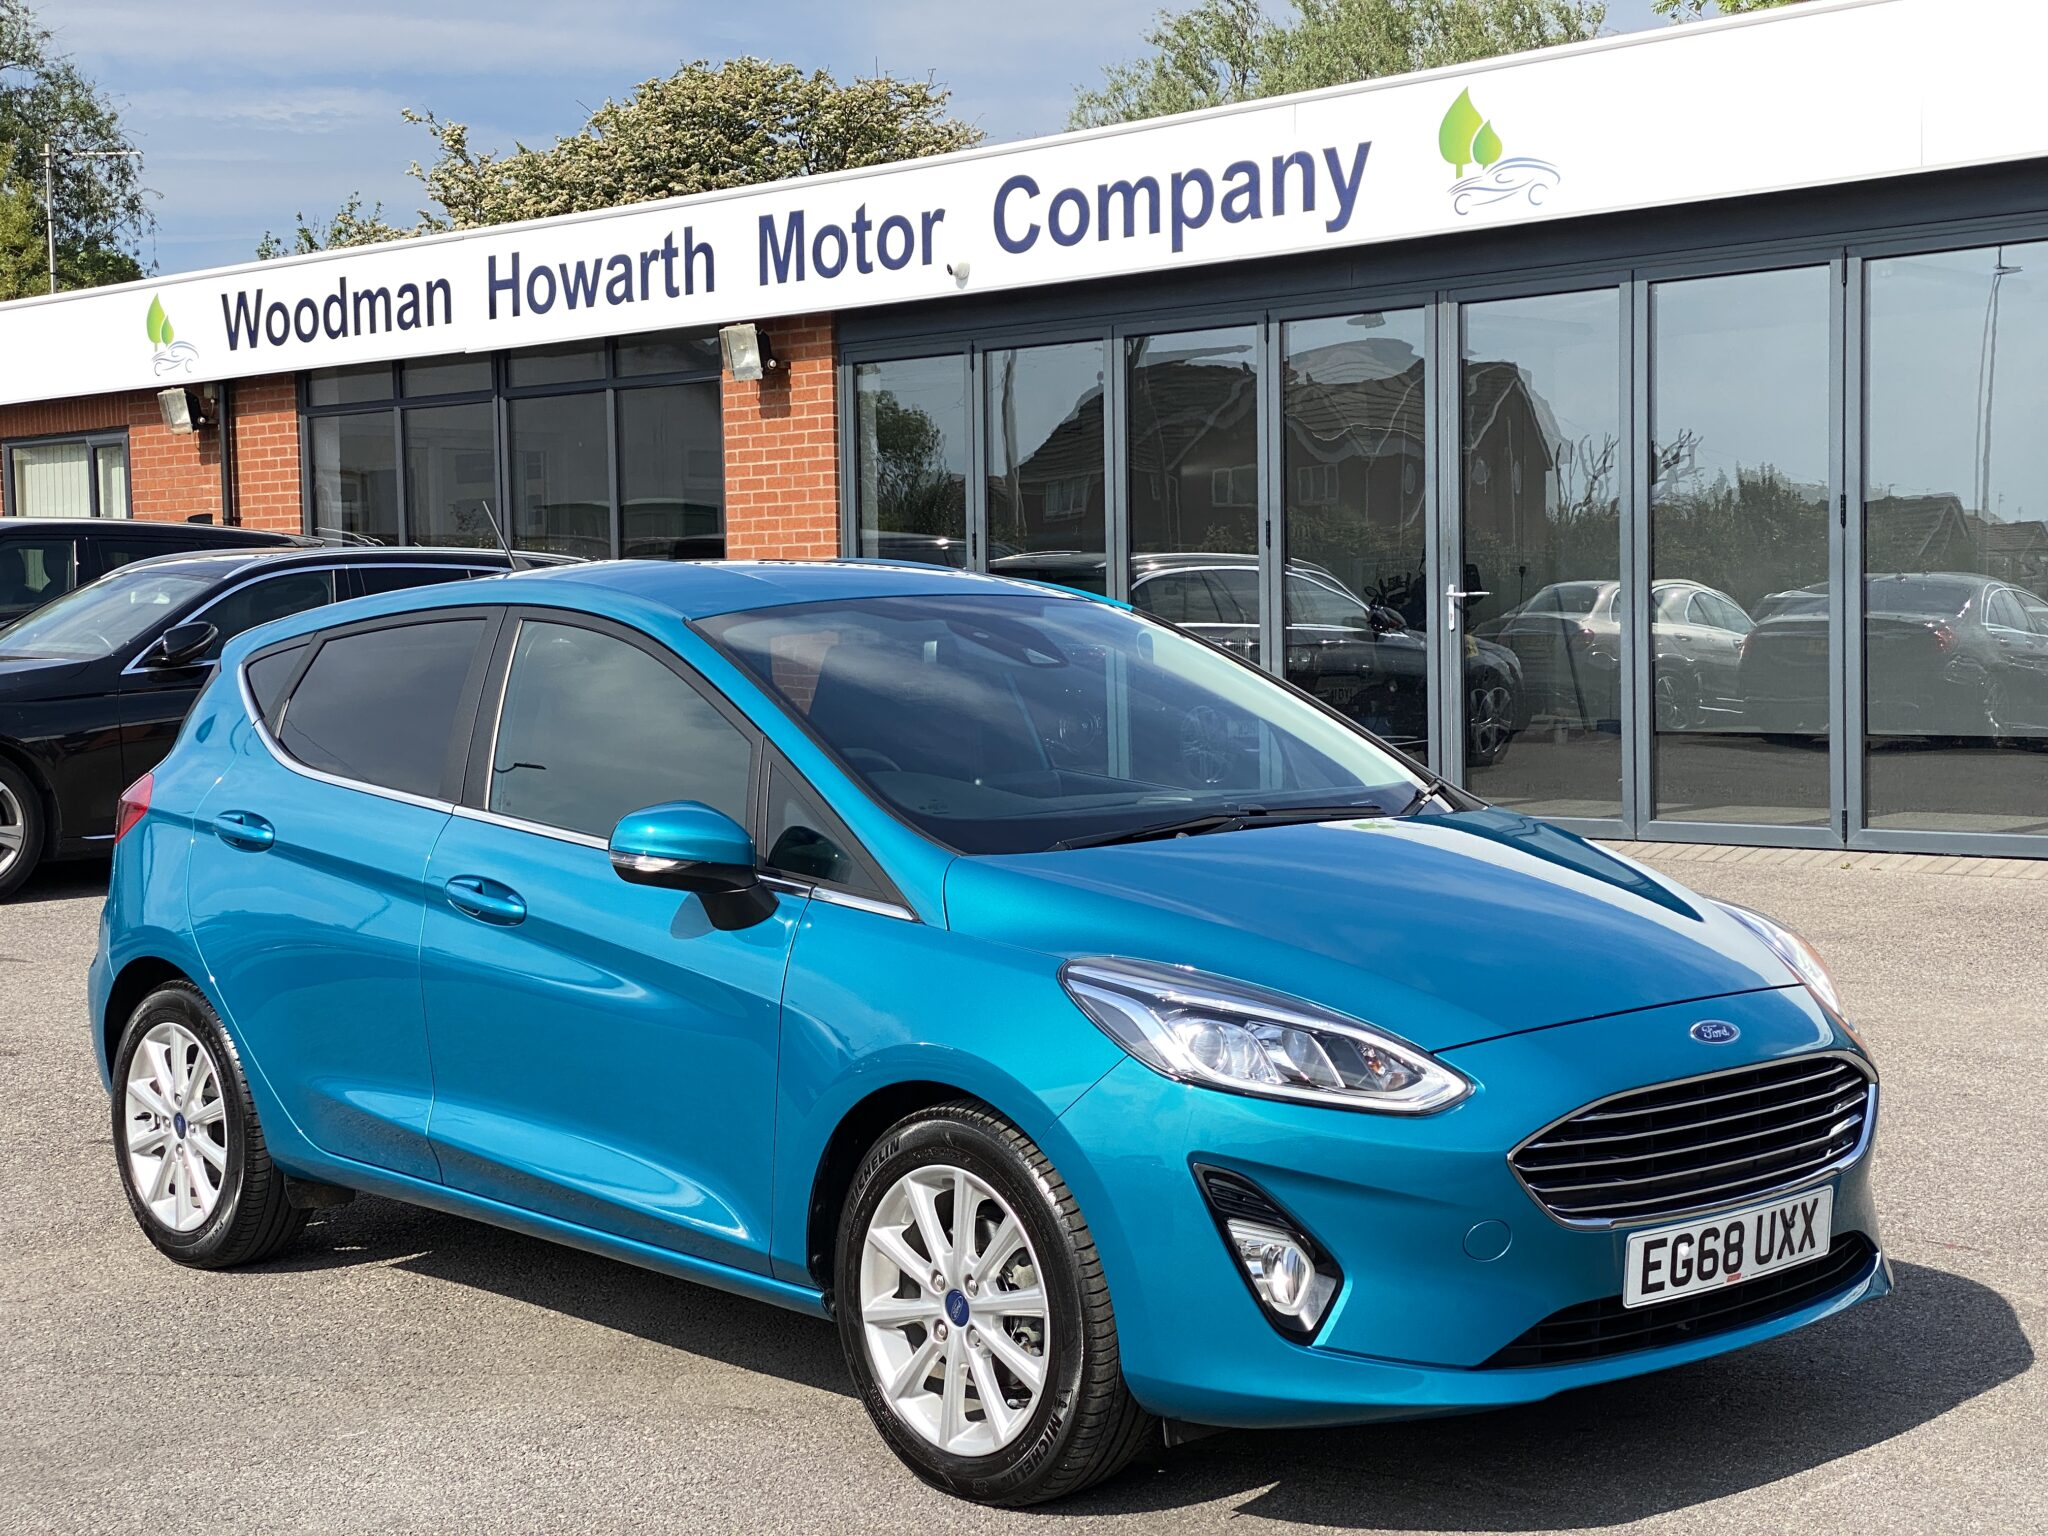 2019 68 FORD FIESTA 1.0T ECOBOOST TITANIUM 5DR Very Rare Colour Only 6K Miles